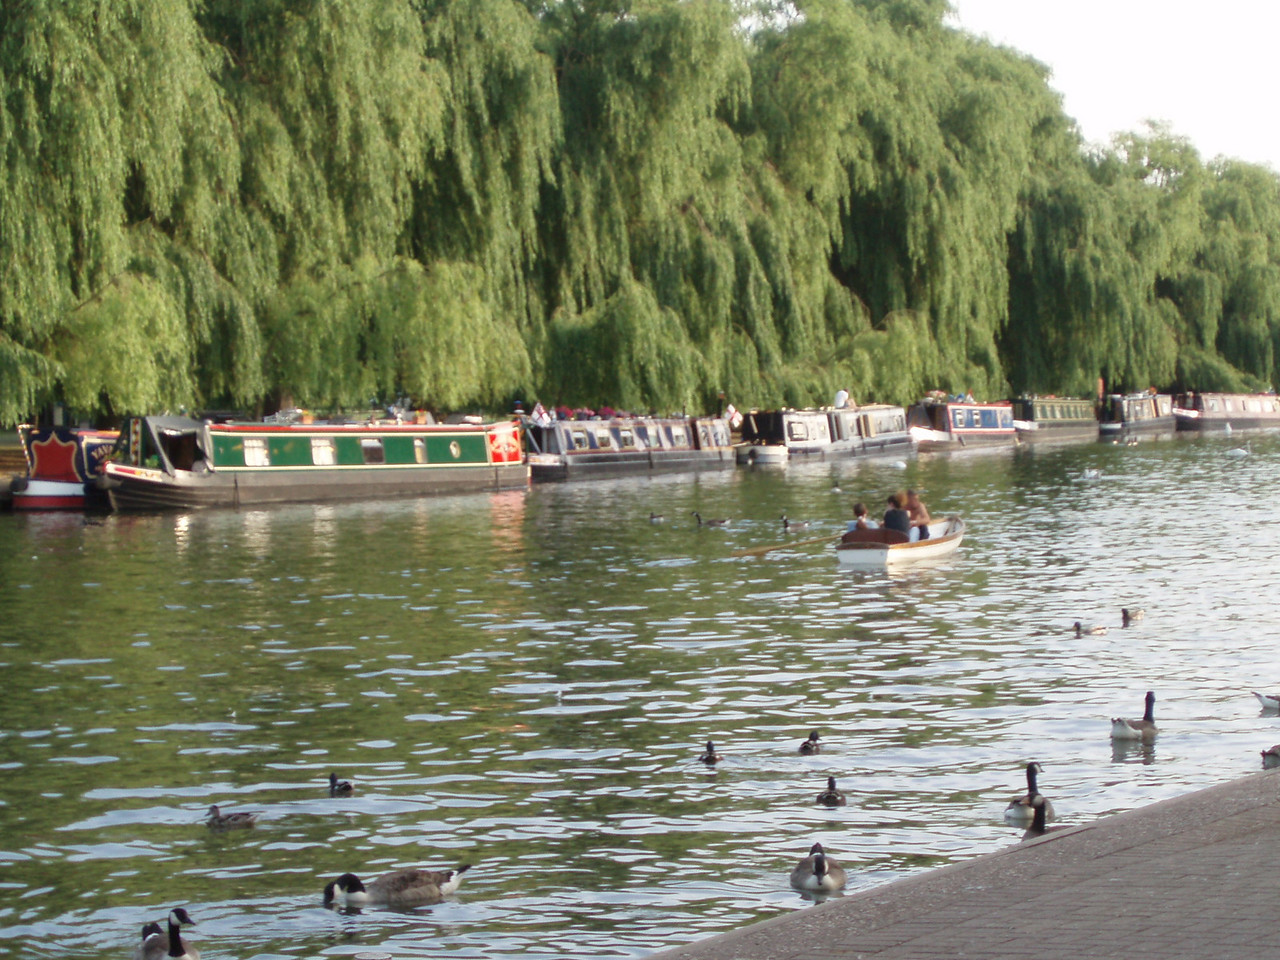 "This picture shows heavy traffic tied up near the Shakespear theatre near Stratford.<br /> <br /> <br /> <br /> <br /> <br /> Check out some links to British canals where taking a week's holiday on a canal is quite the thing to do. Or do your own search on ""Canals in England""<br /> <br />  <a href=""http://en.wikipedia.org/wiki/Canals_of_Great_Britain"">http://en.wikipedia.org/wiki/Canals_of_Great_Britain</a><br /> <br />  <a href=""http://www.transitionsabroad.com/publications/magazine/0111/cruise_englands_canals.shtml"">http://www.transitionsabroad.com/publications/magazine/0111/cruise_englands_canals.shtml</a><br /> <br />  The Falkirk Wheel, or ""ferris wheel for boats"" in Scotland is particularly fascinating!  View it at <br /> <br />  <a href=""http://www.undiscoveredscotland.co.uk/falkirk/falkirkwheel/index.html"">http://www.undiscoveredscotland.co.uk/falkirk/falkirkwheel/index.html</a>"